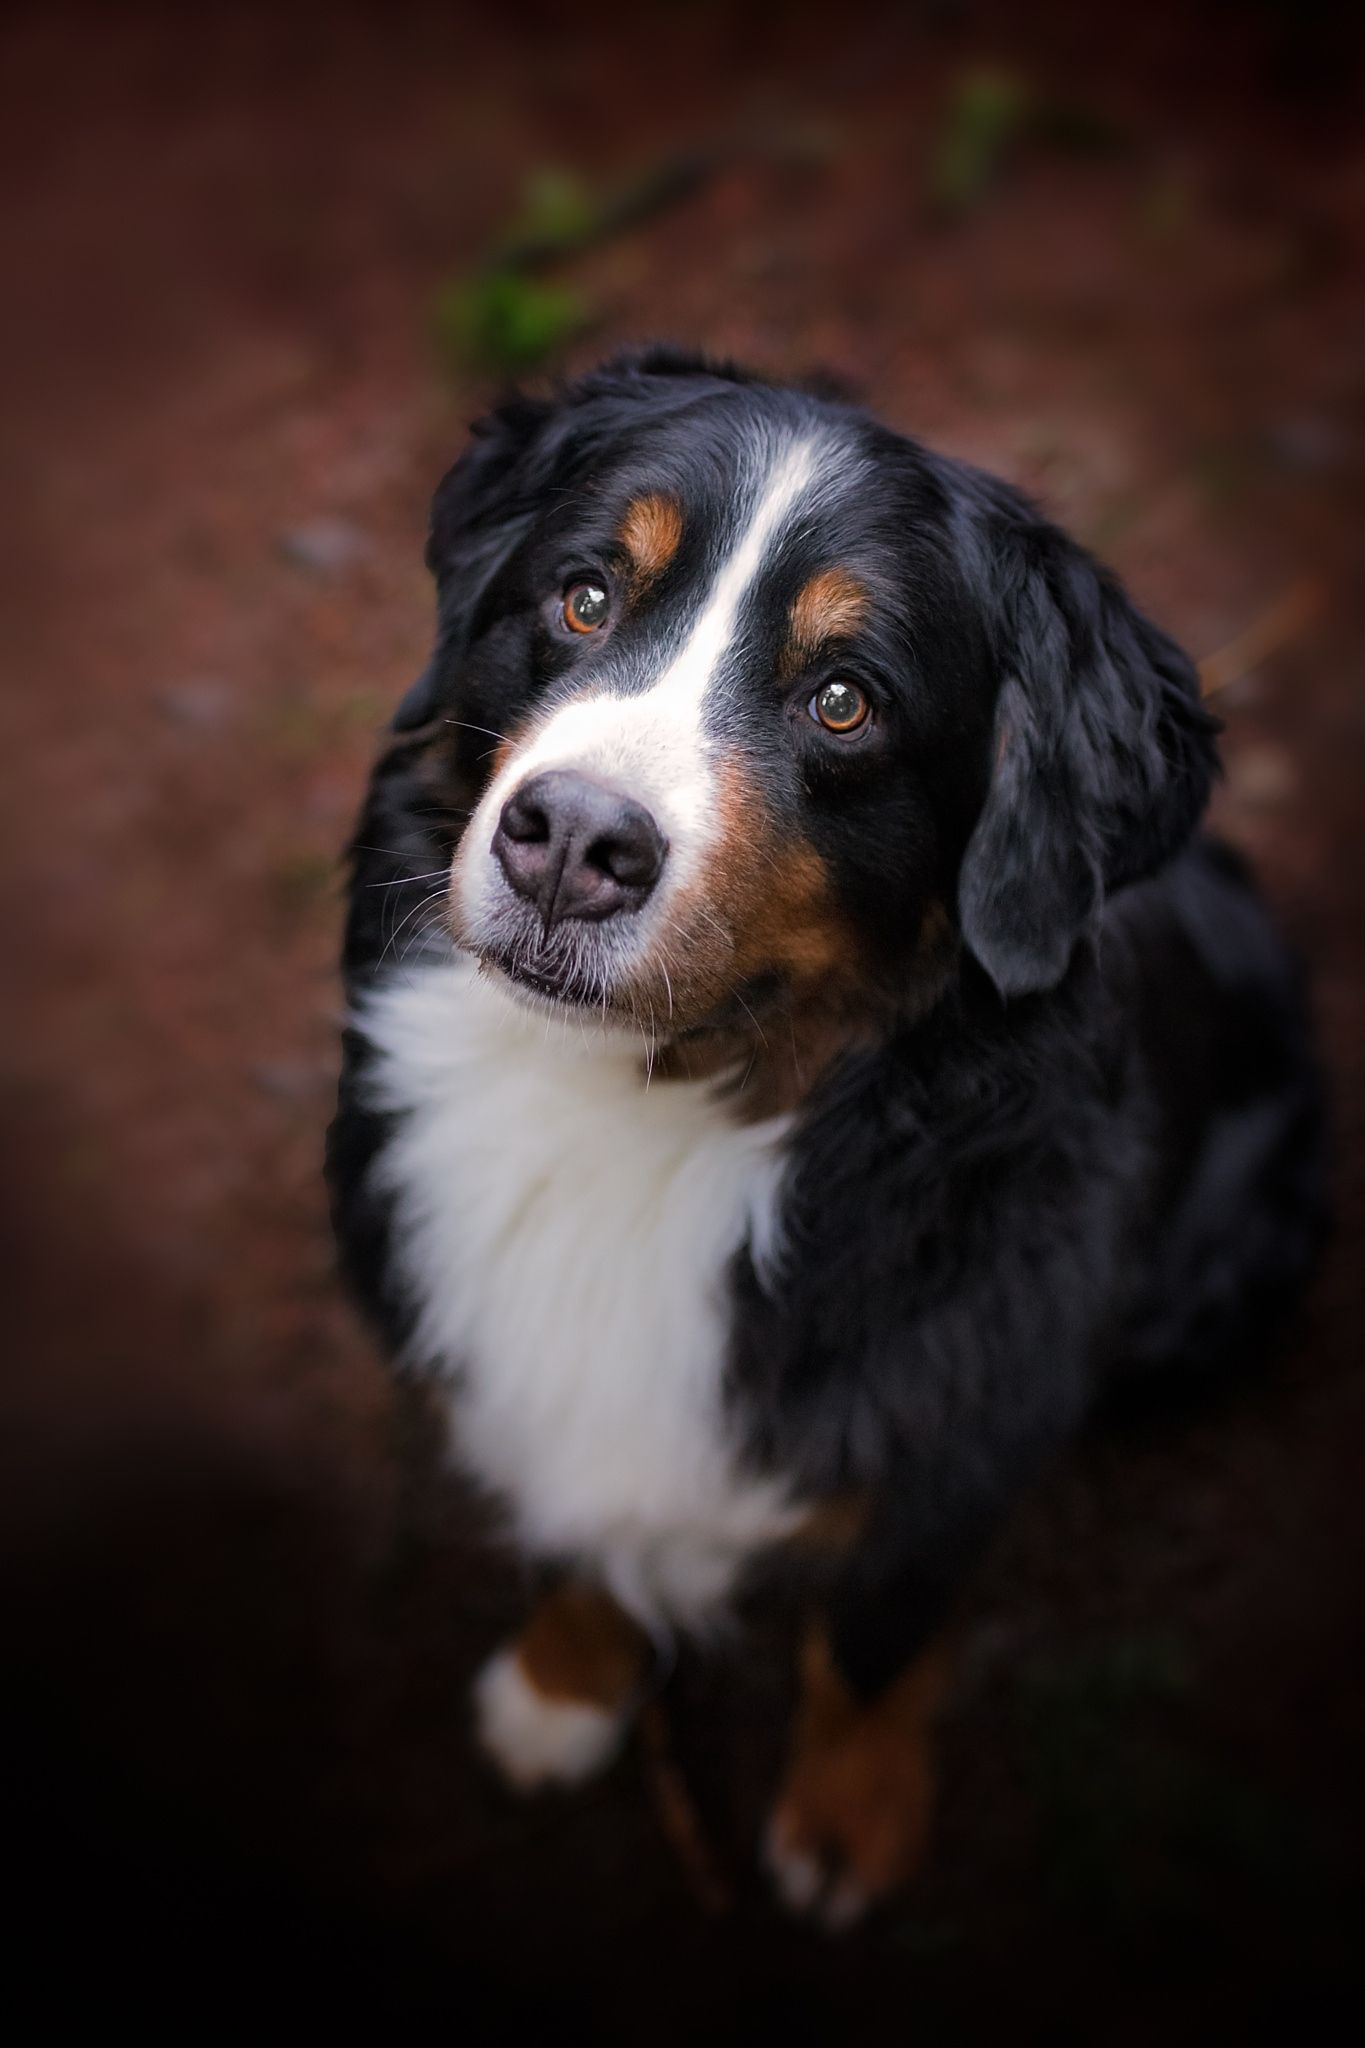 Gambler Portrait 1 If You Follow Me You Would Of Seen A Photo I Did Of Gambler The Bernese Mountain Dog From D Mountain Dogs Burmese Mountain Dogs Dogs